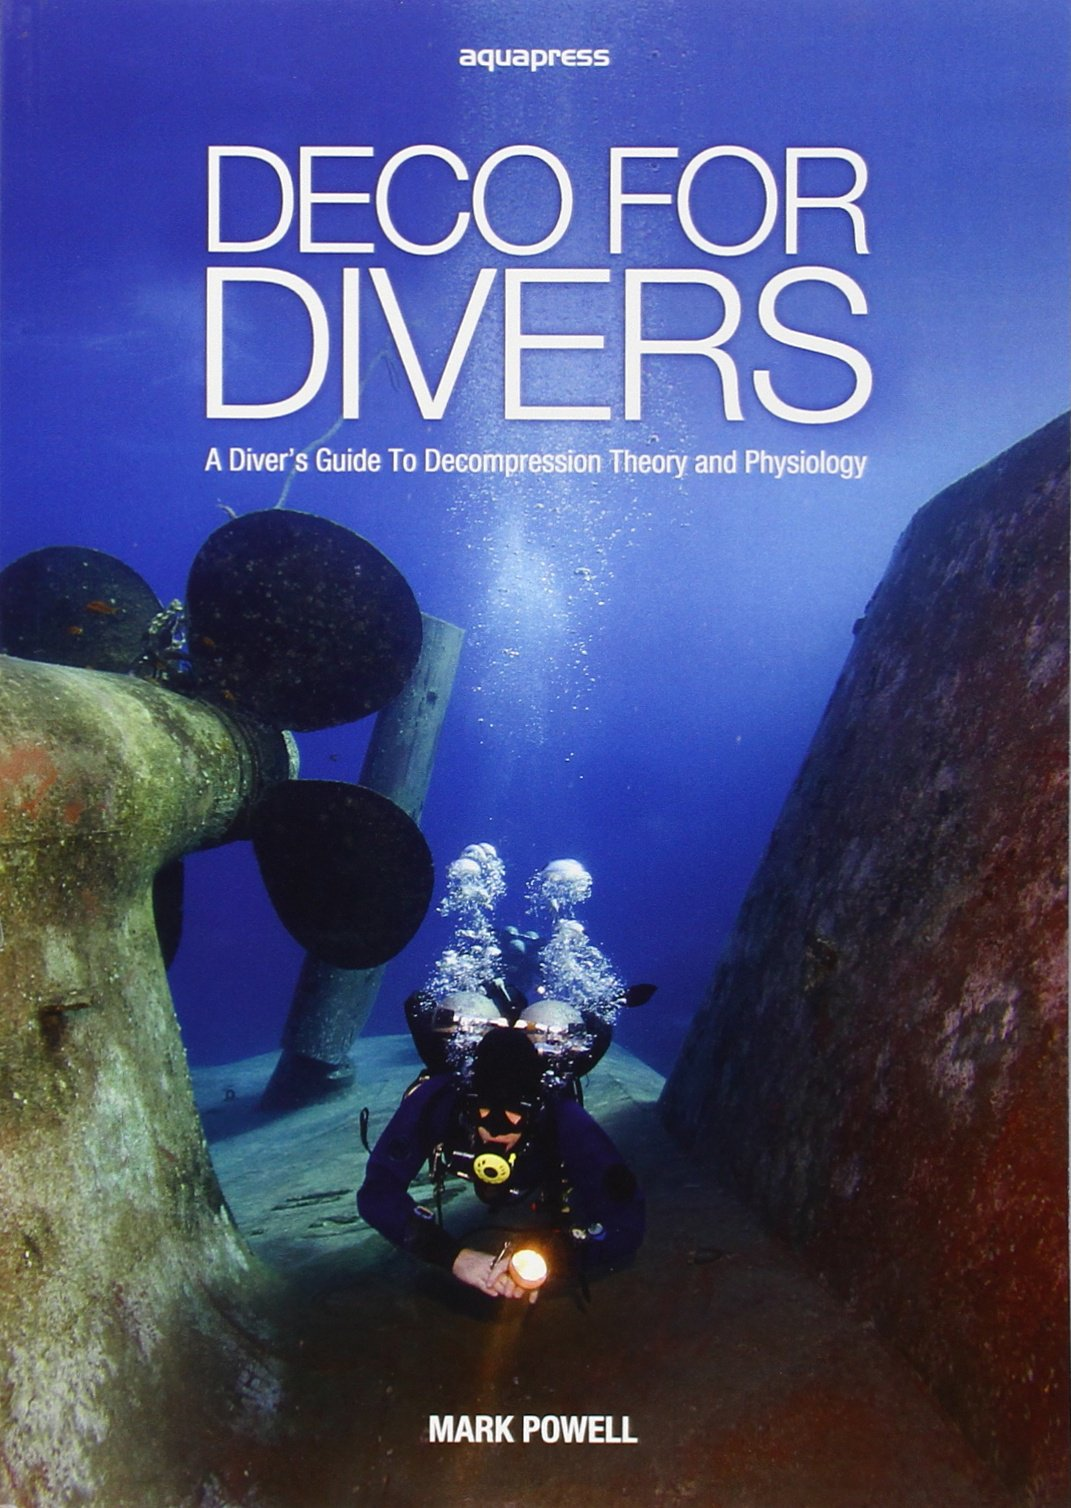 Deco for Divers: Decompression Theory and Physiology